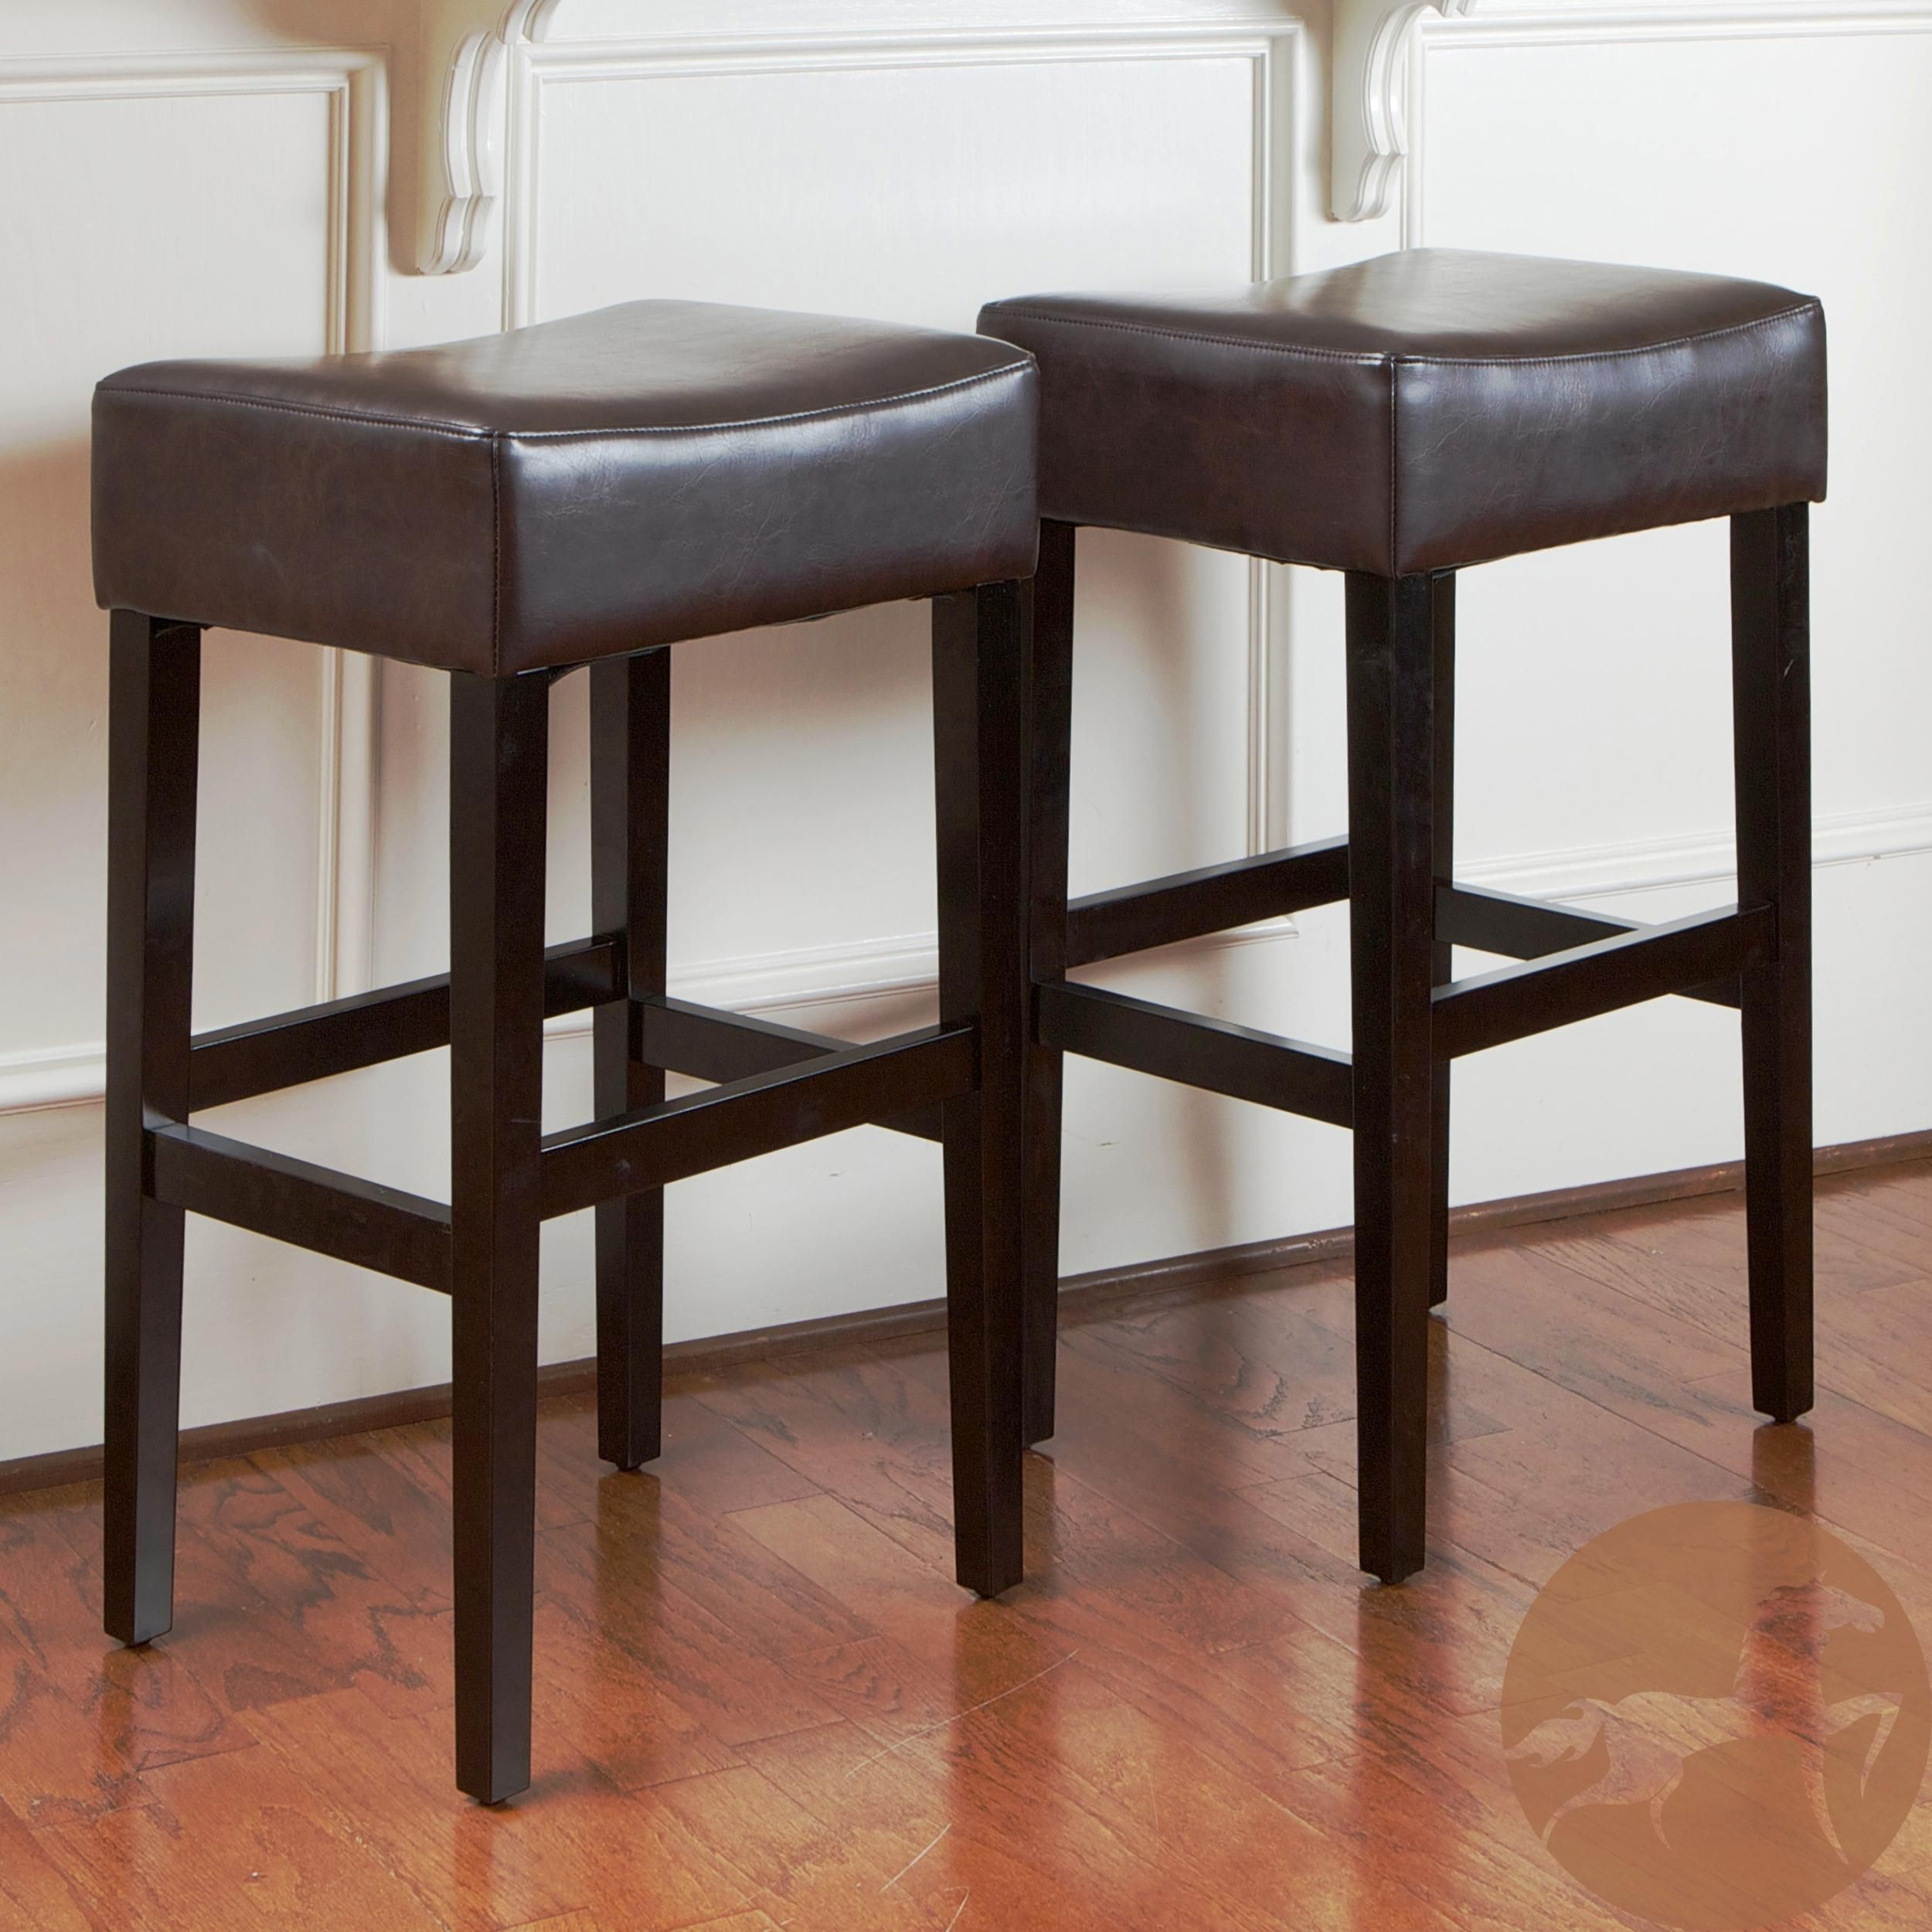 Peachy Leather Bar Stools With Nailhead Trim Summerland Cjindustries Chair Design For Home Cjindustriesco